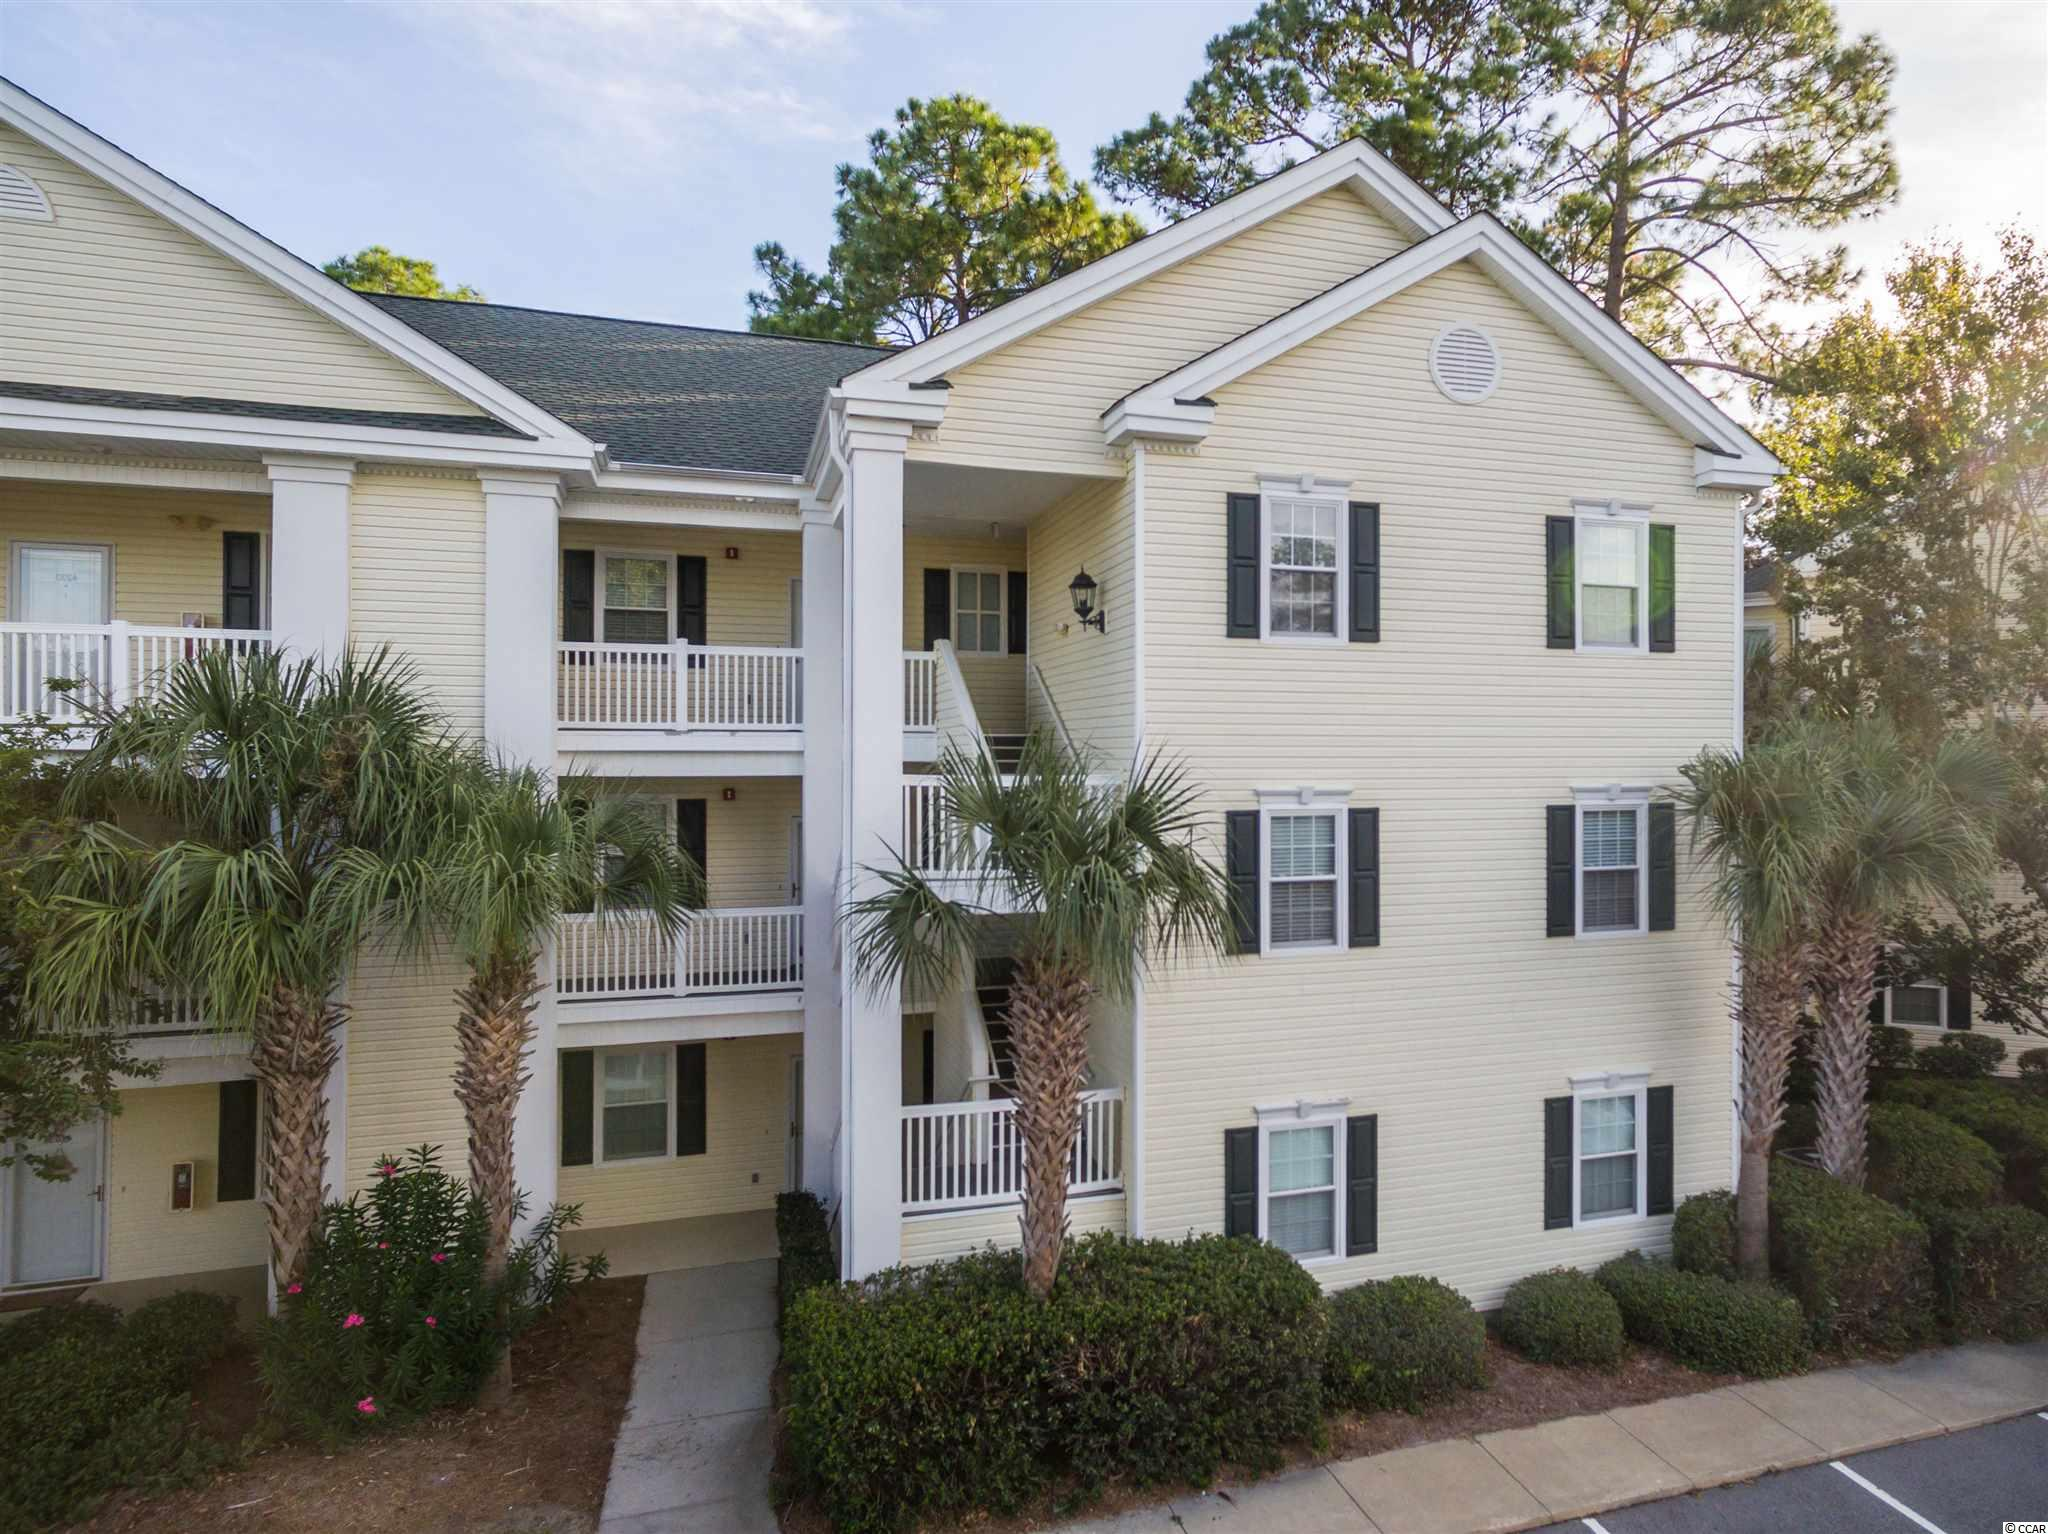 """Just listed in OCEAN KEYES! This END UNIT 2BR/2BA with Study is only 2 blocks from Main Street in the Tilghman section of North Myrtle Beach. Spacious """"Port Royal"""" floor plan offers granite counter tops, all appliances, large glass Carolina Room, and vaulted/tray ceilings, & separate attached storage closet. The Study could easily be used as a bedroom to increase sleeping capacity. Located in a gated community with numerous swimming pools, tennis courts, & a workout facility, there is always something to do onsite! Walk, bike, or ride to Main Street, Restaurants, Shag Clubs, Shopping, and the beach. Exceptionally clean and neat condo in one of the best selling neighborhoods in the heart of North Myrtle Beach. Call an Agent TODAY to schedule your own private viewing! This market is blazing HOT. This Unit won't last long. All the information provided in this listing is deemed accurate, but not guaranteed. Buyer and their Agent are responsible for verification."""